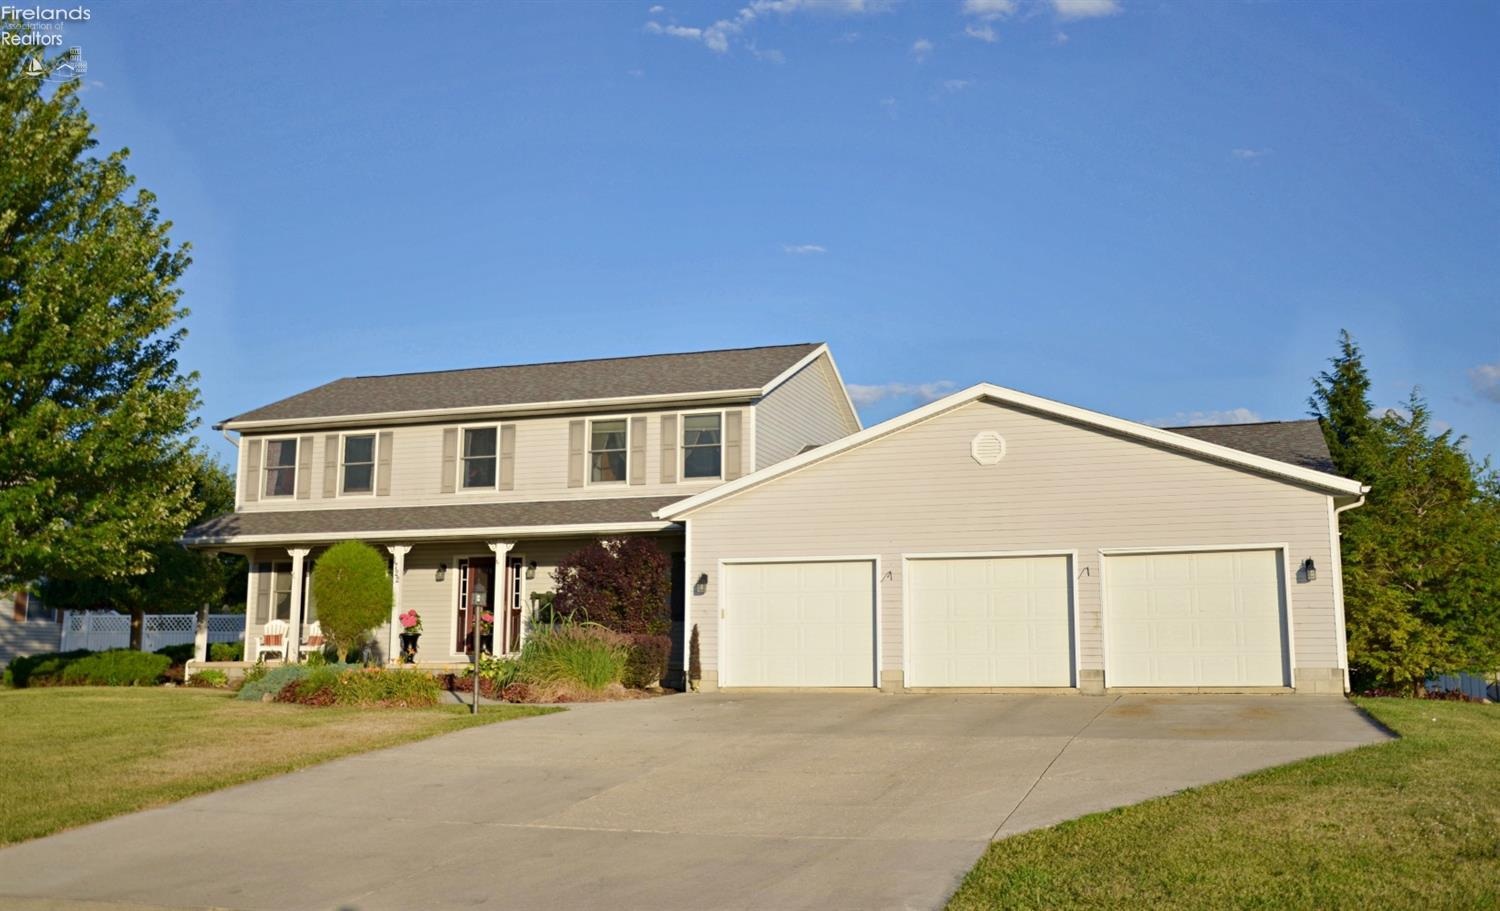 1722 DRIFTWOOD DRIVE, TIFFIN, OH 44883  Photo 2